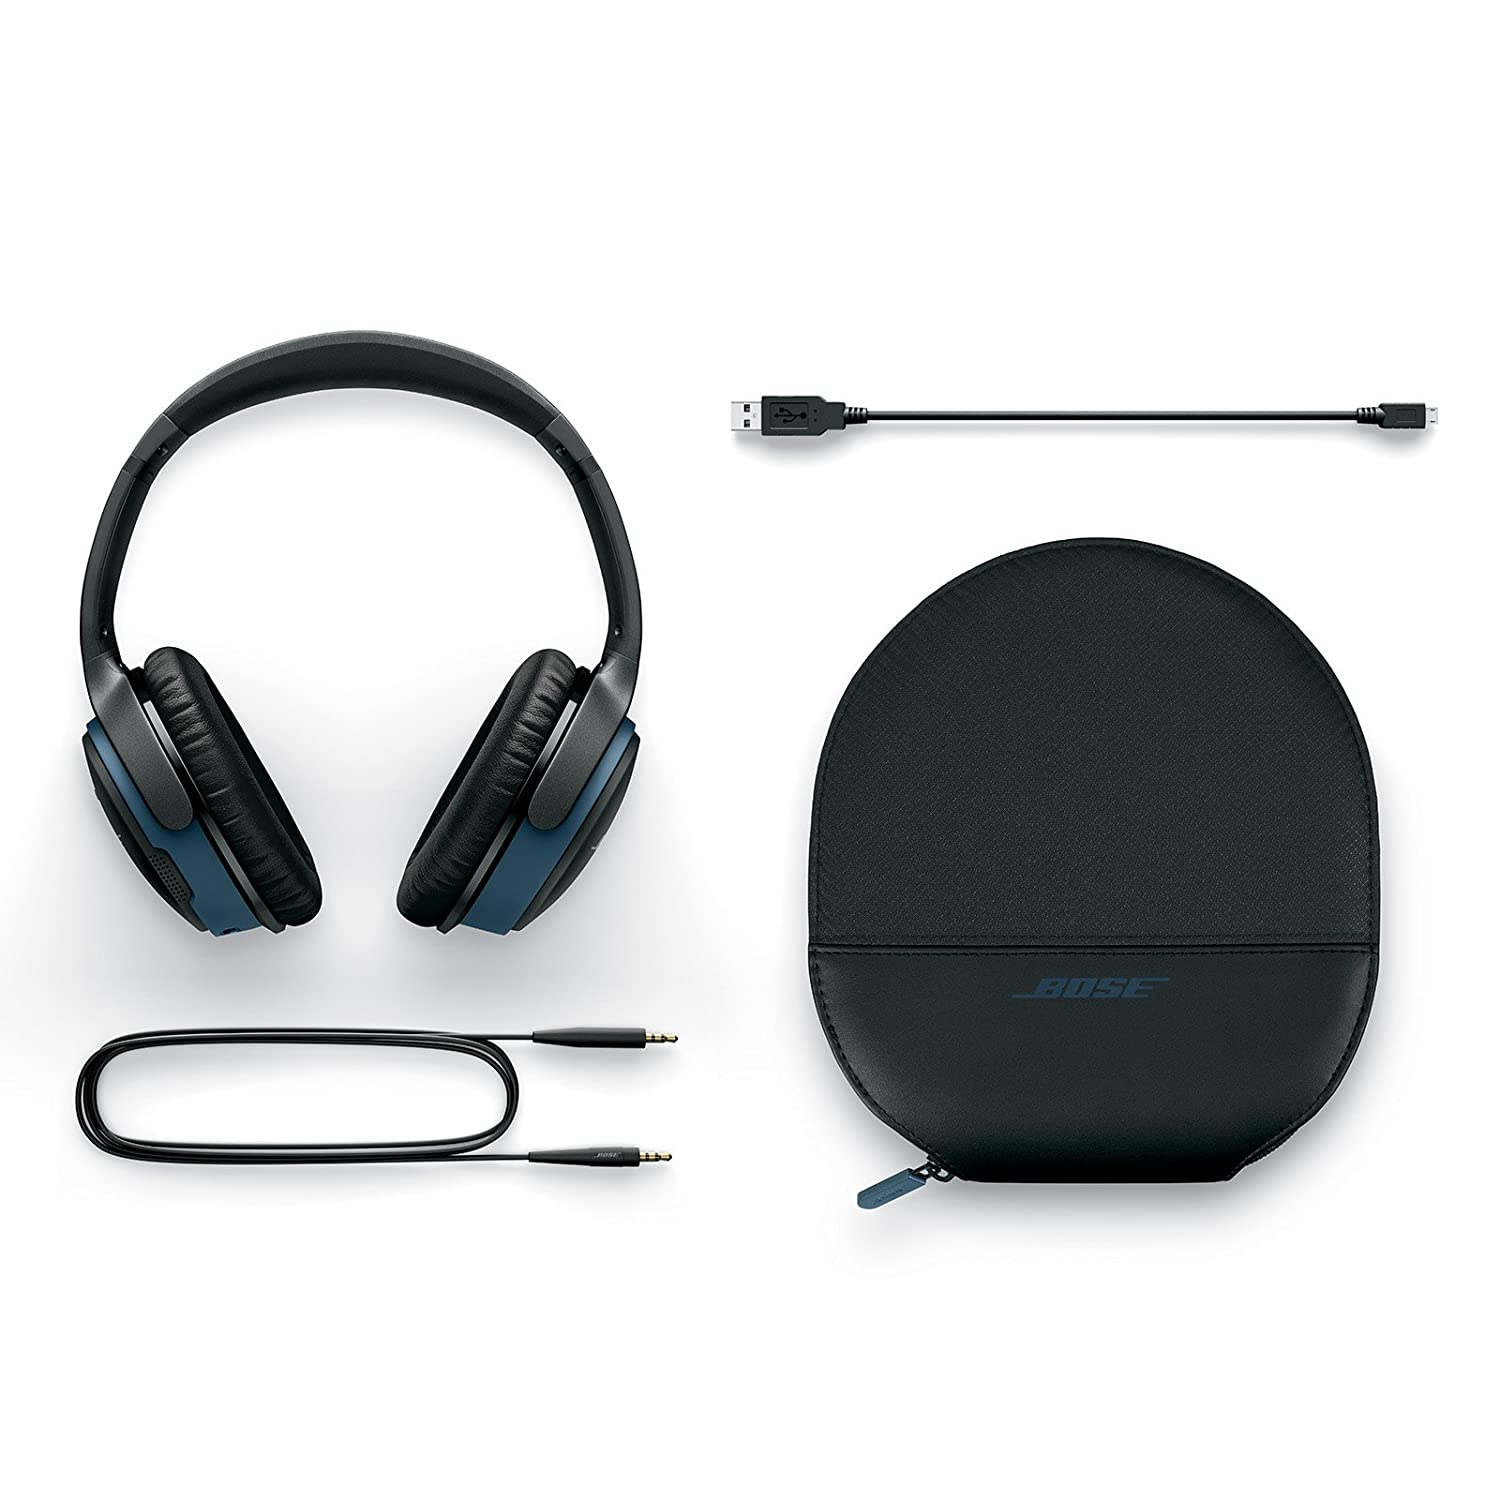 bose bluetooth earphones. amazon.com: bose soundlink around-ear wireless headphones ii black: home audio \u0026 theater bluetooth earphones